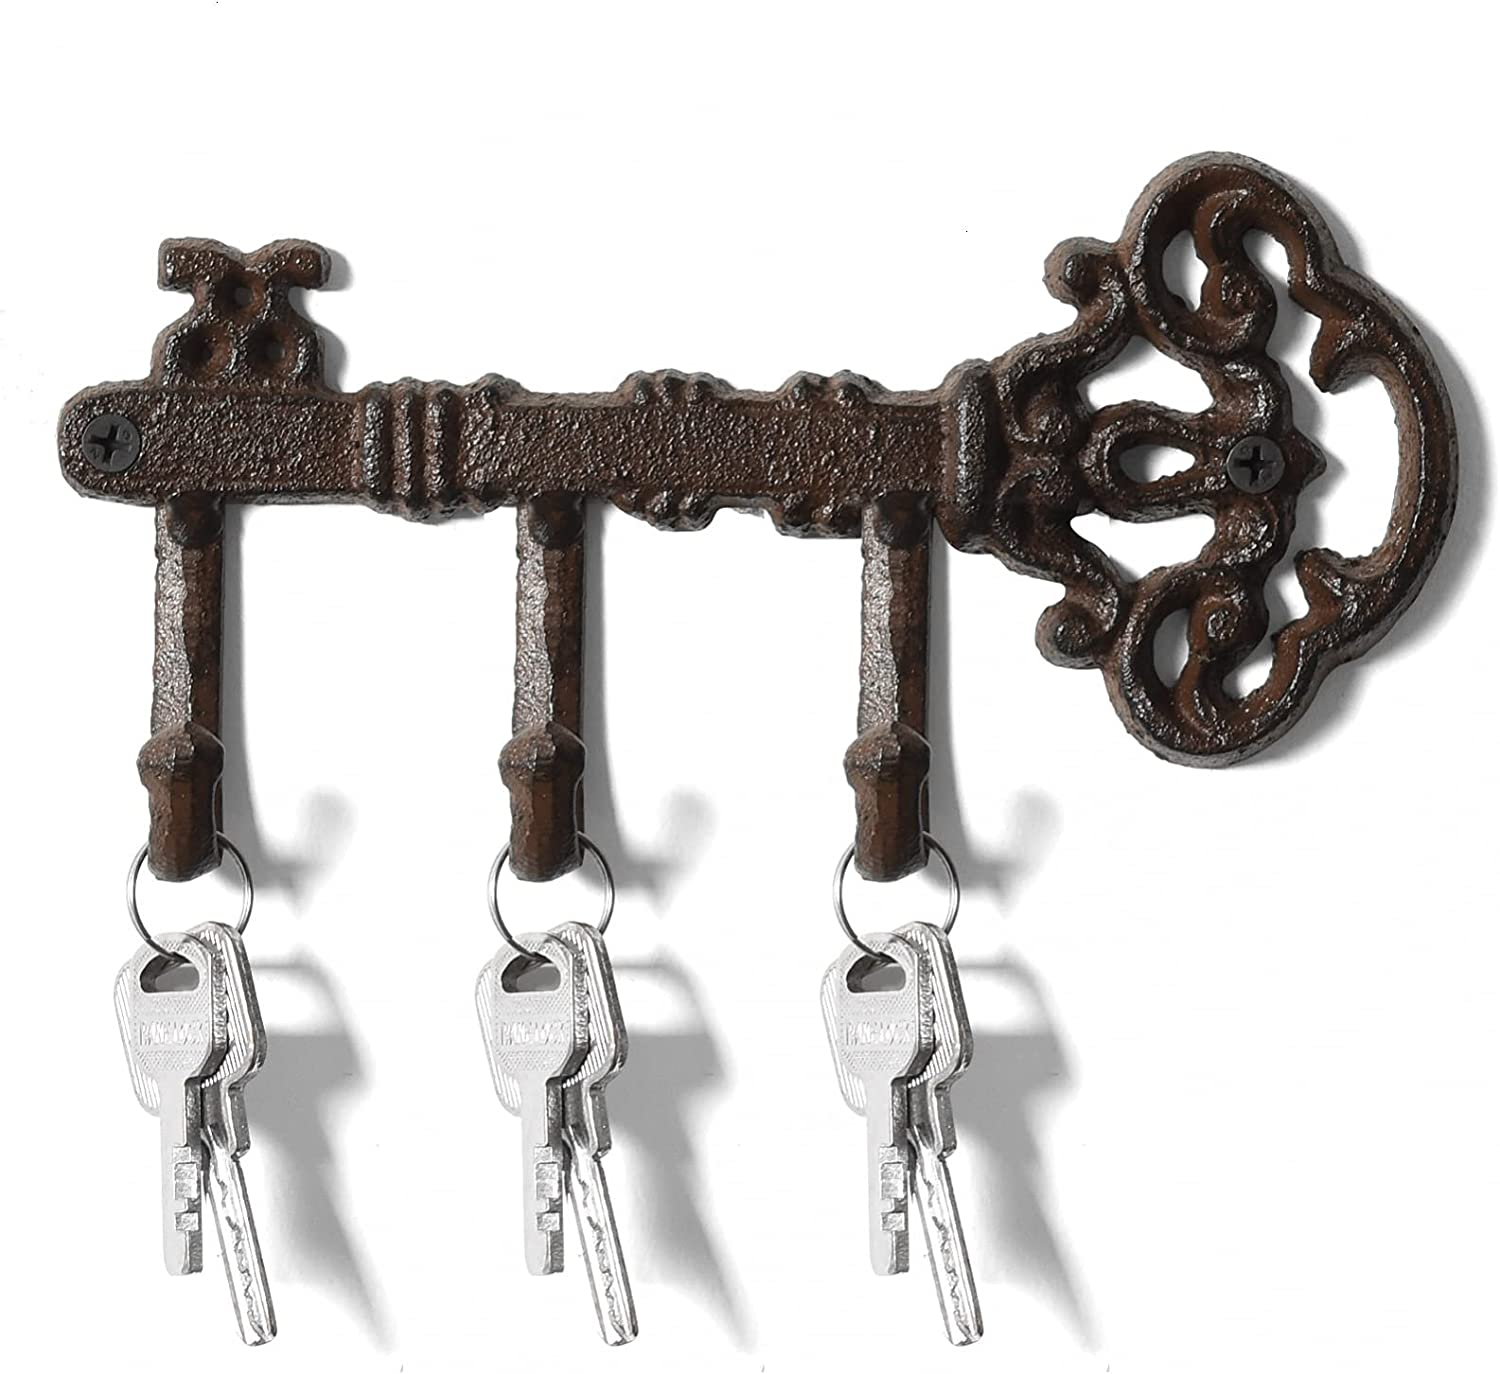 WSSROGY Cast Iron Key Holder for Wall Decorative, Wall Key Holders for Home with 3 Hooks, Key Hangers for Wall, Antique Brown Key Rack, Farmhouse Decor,8.75 X 3.5 Inches